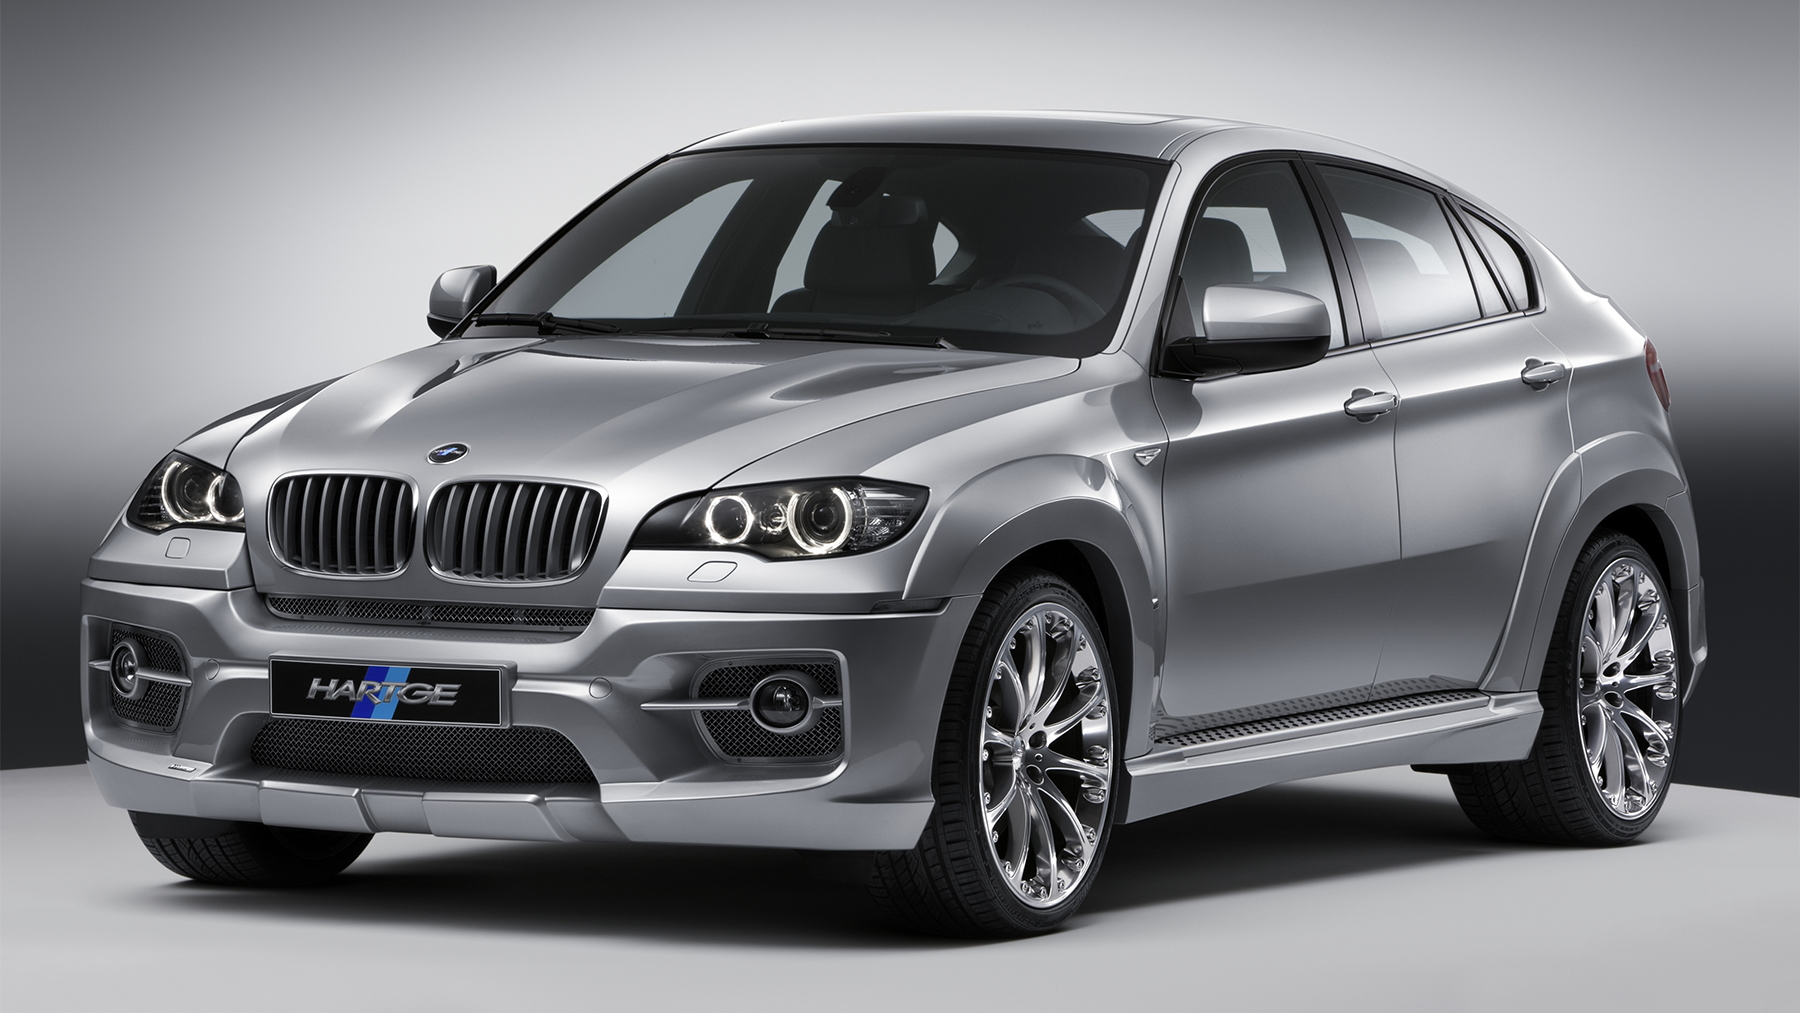 hartge bmw x6 styling pack 001